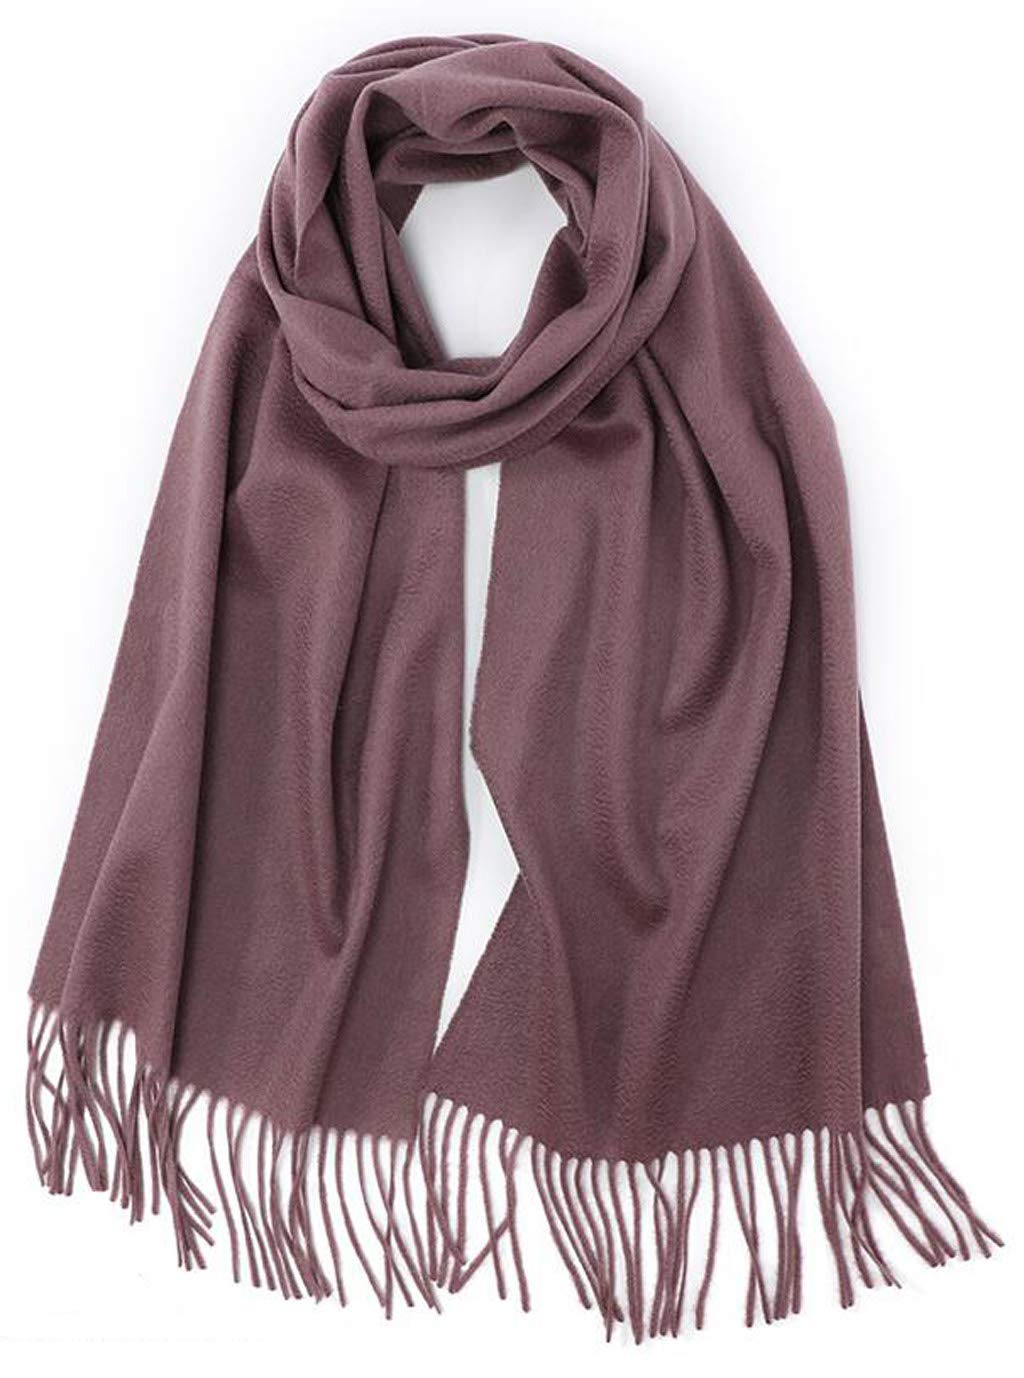 C JUN Scarf Ladies Winter Thick Warm Warm Cashmere Water Ripple Shawl Dual Purpose (color   A)